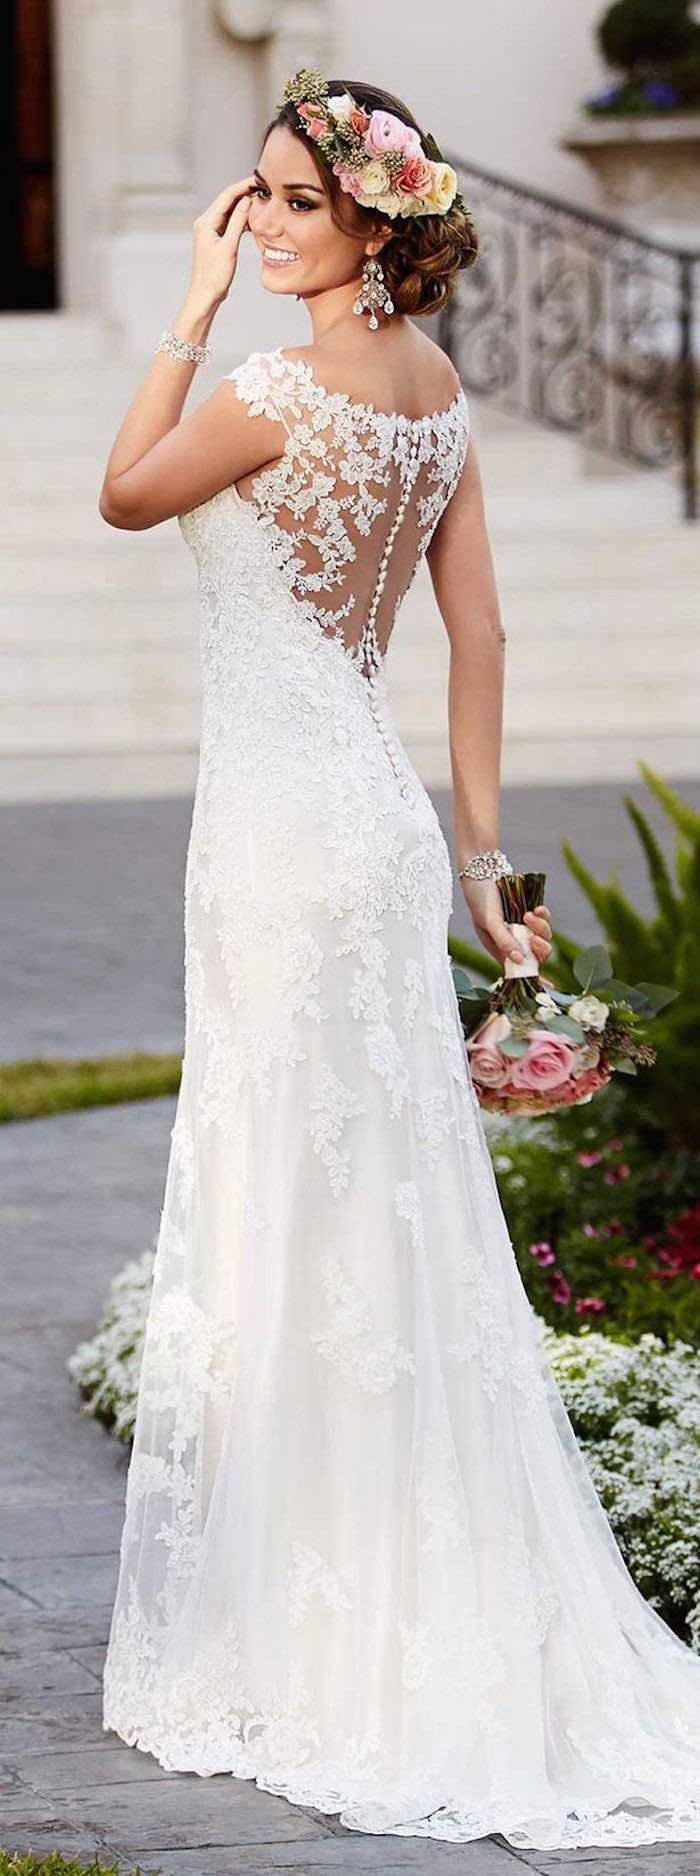 Fresh Gorgeous Stella York lace wedding dress looks amazing for this summer floral crown Photo via